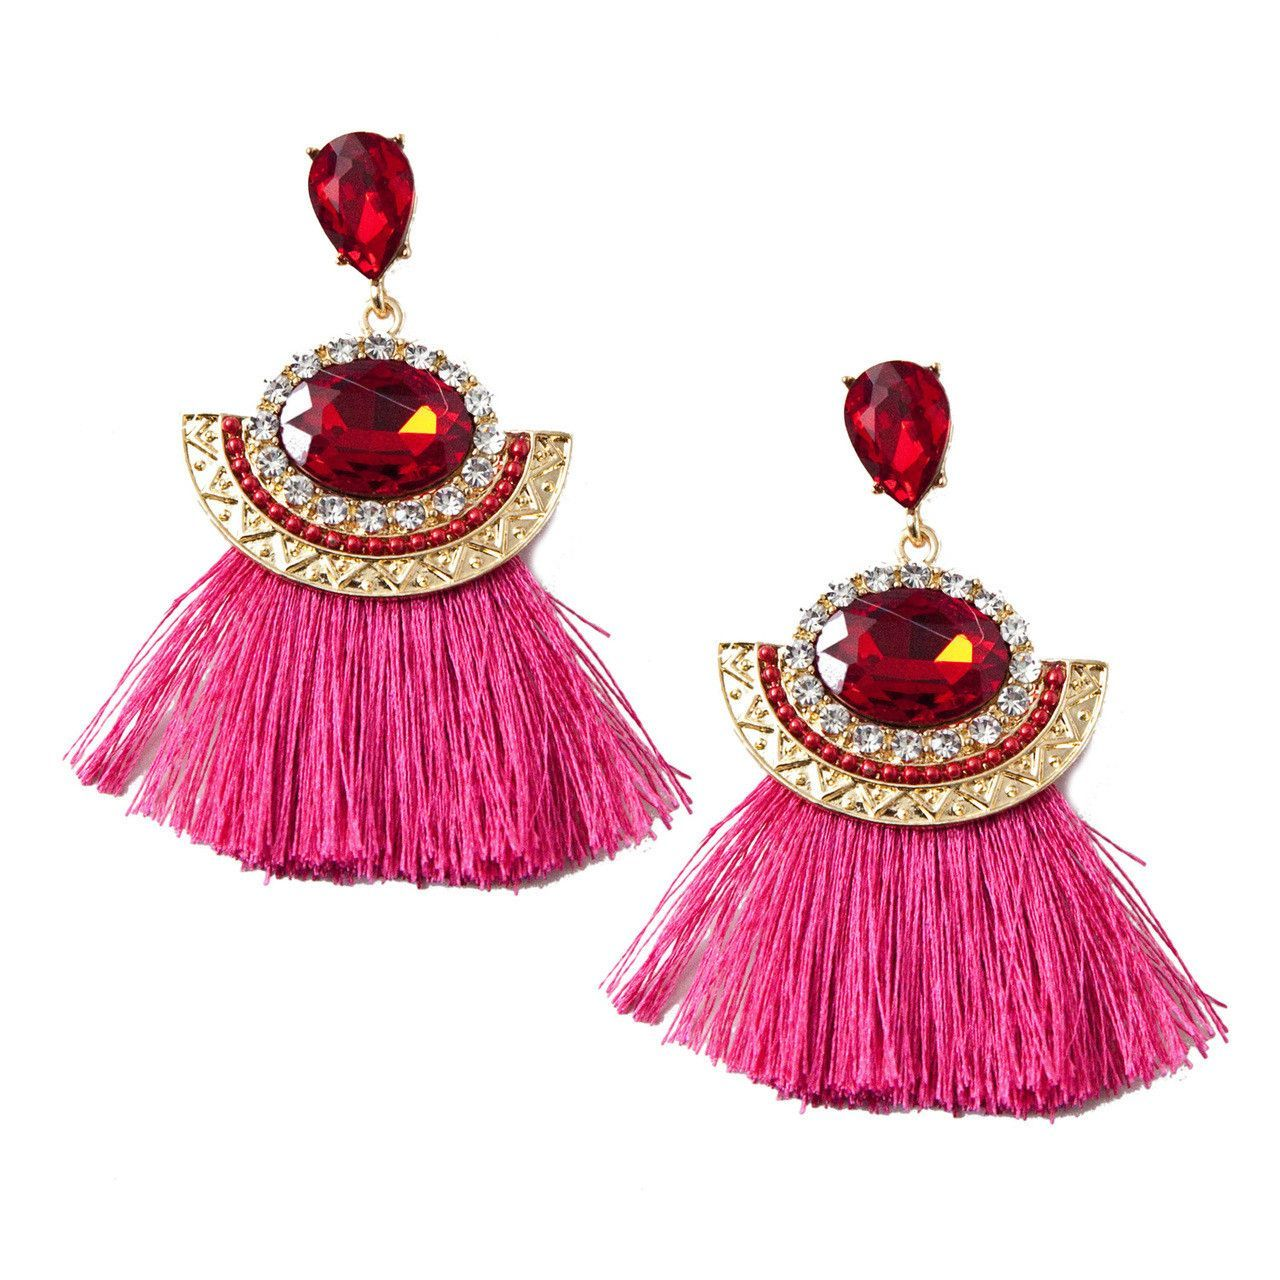 Tassel and Gem Earrings in Ruby and Pink